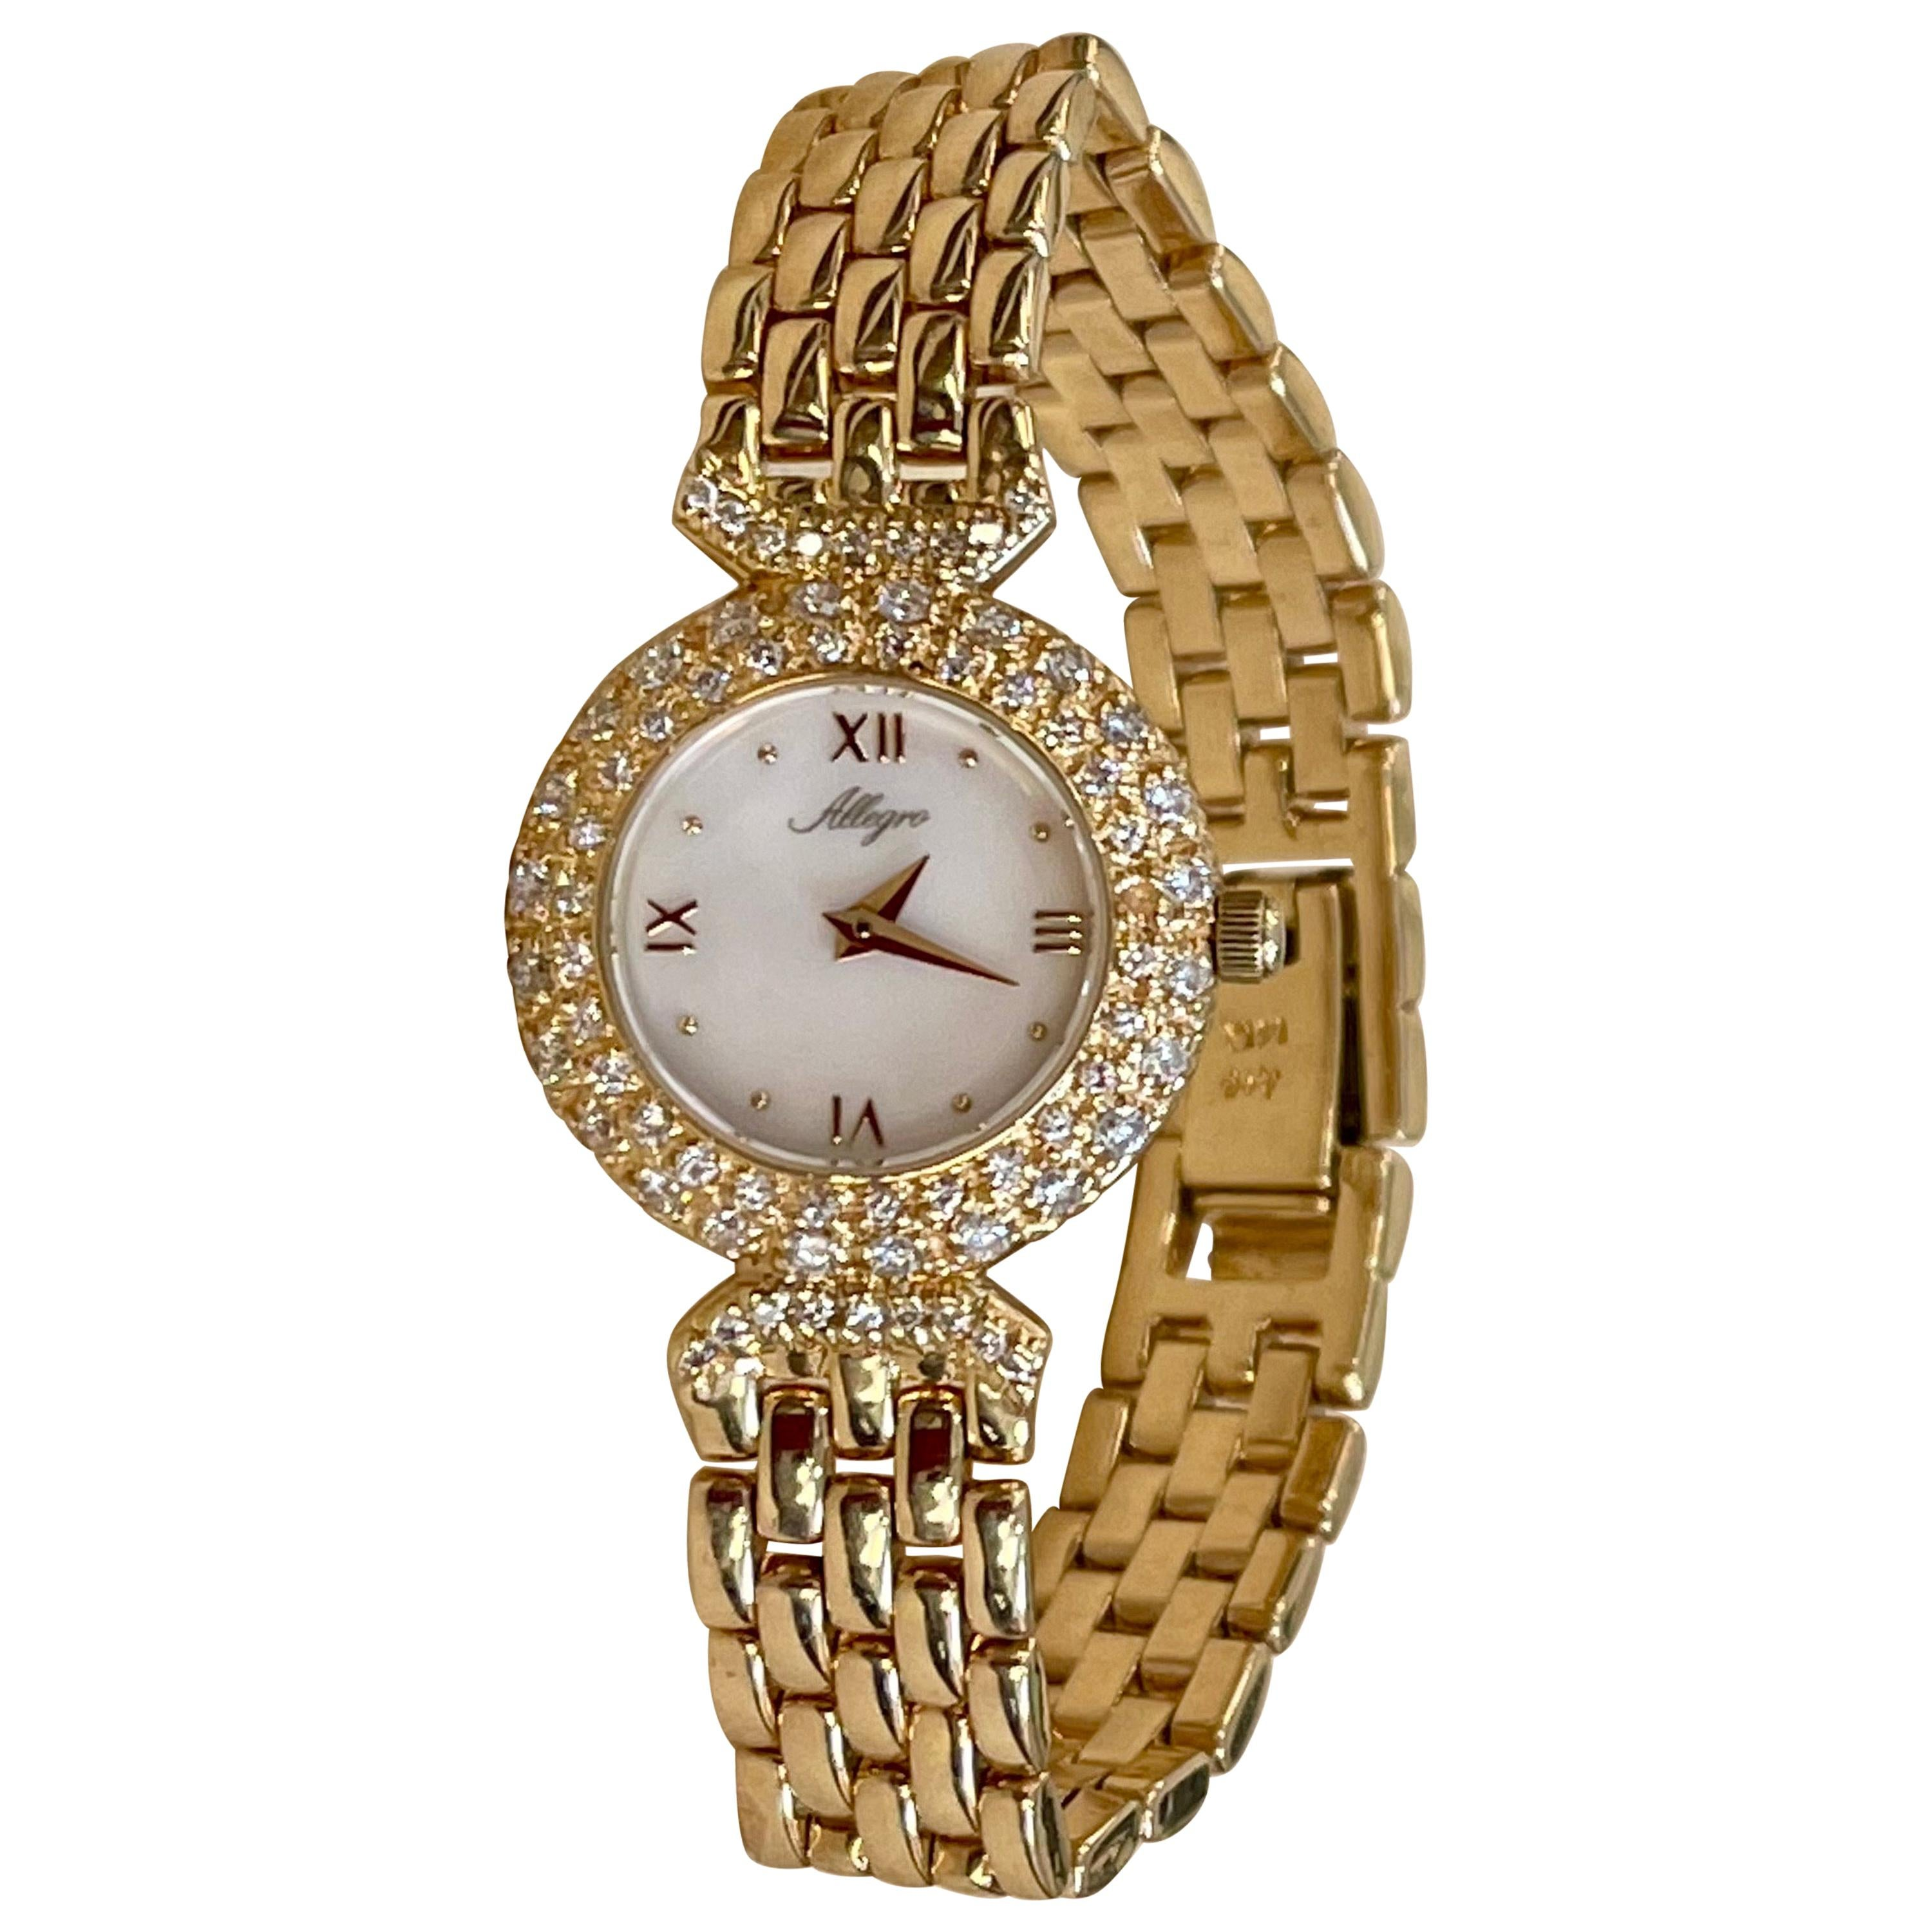 Allegro 14 Karat Yellow Gold Mother of Pearl And Diamond Watch 43 Grams